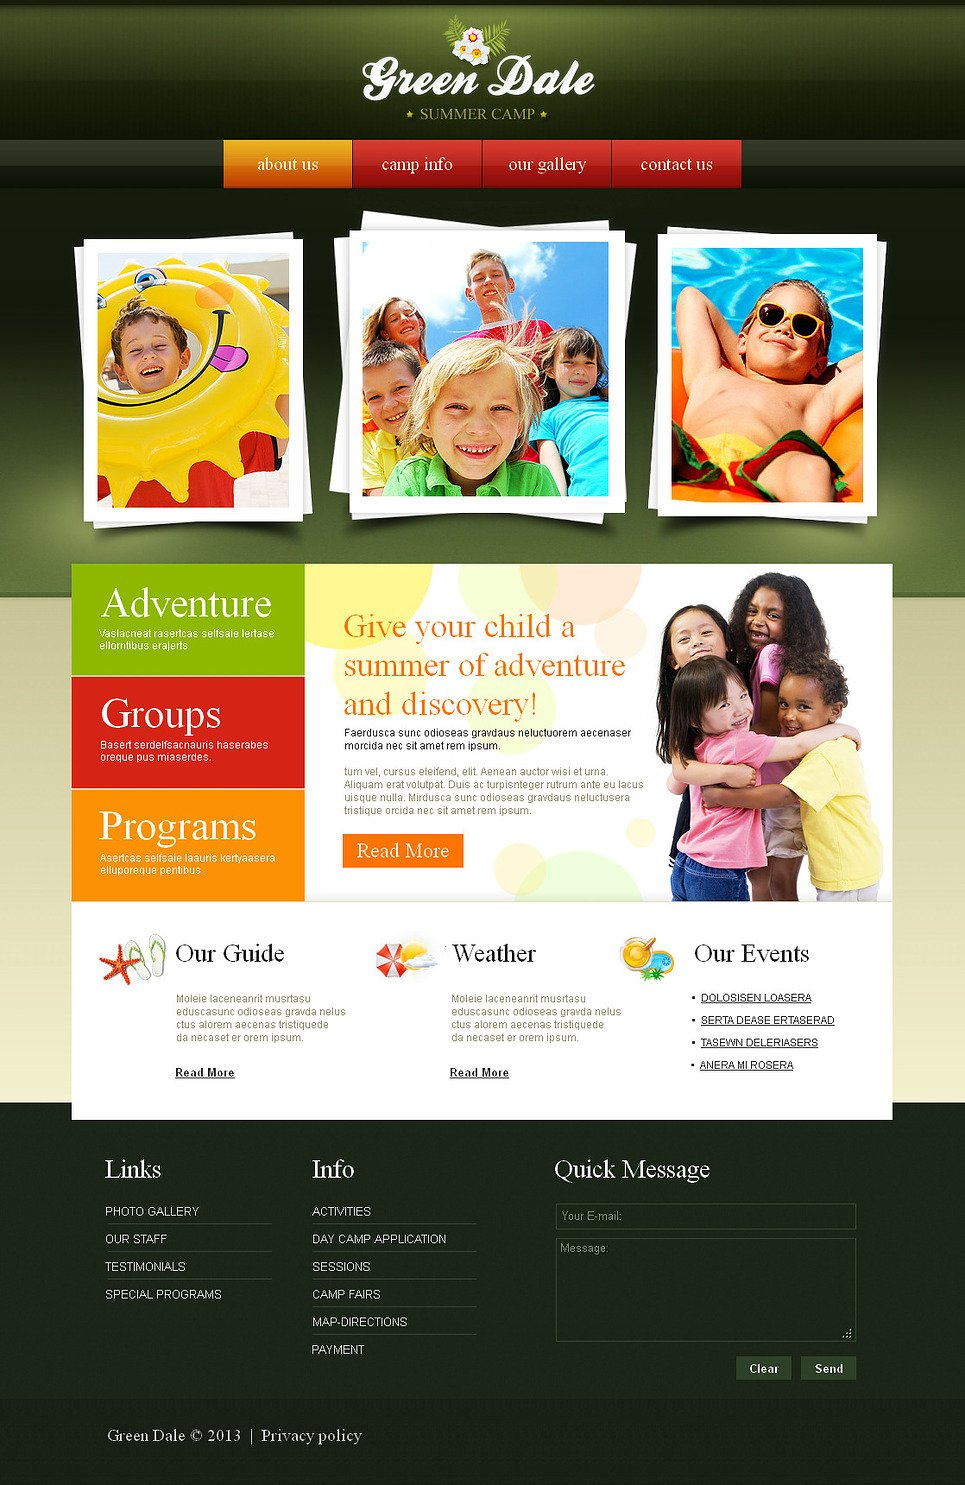 Summer Camp Website Template with the Built-in CMS - image